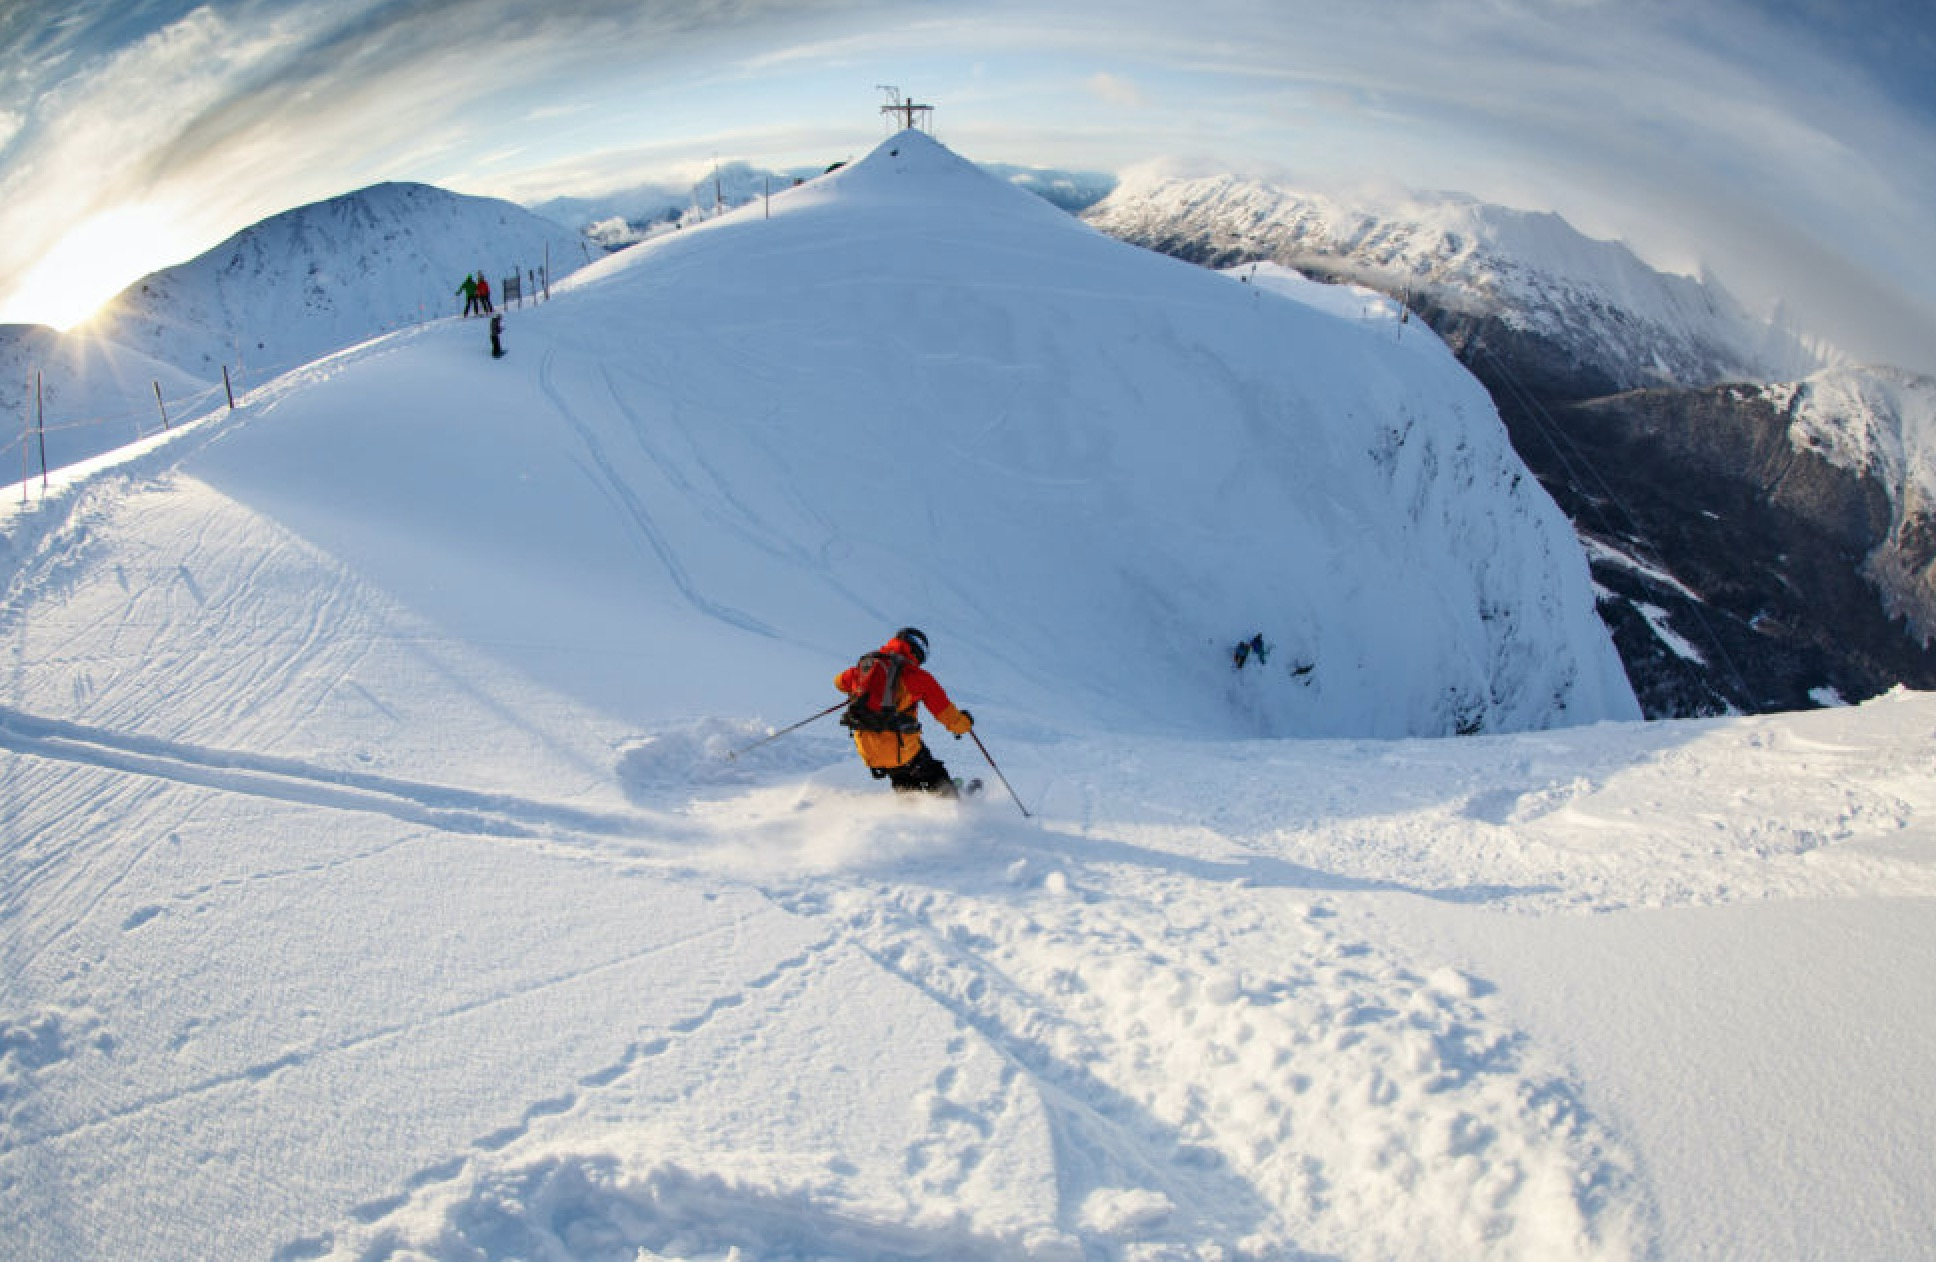 Dive Into Alyeska S Steepest And Deepest Terrain